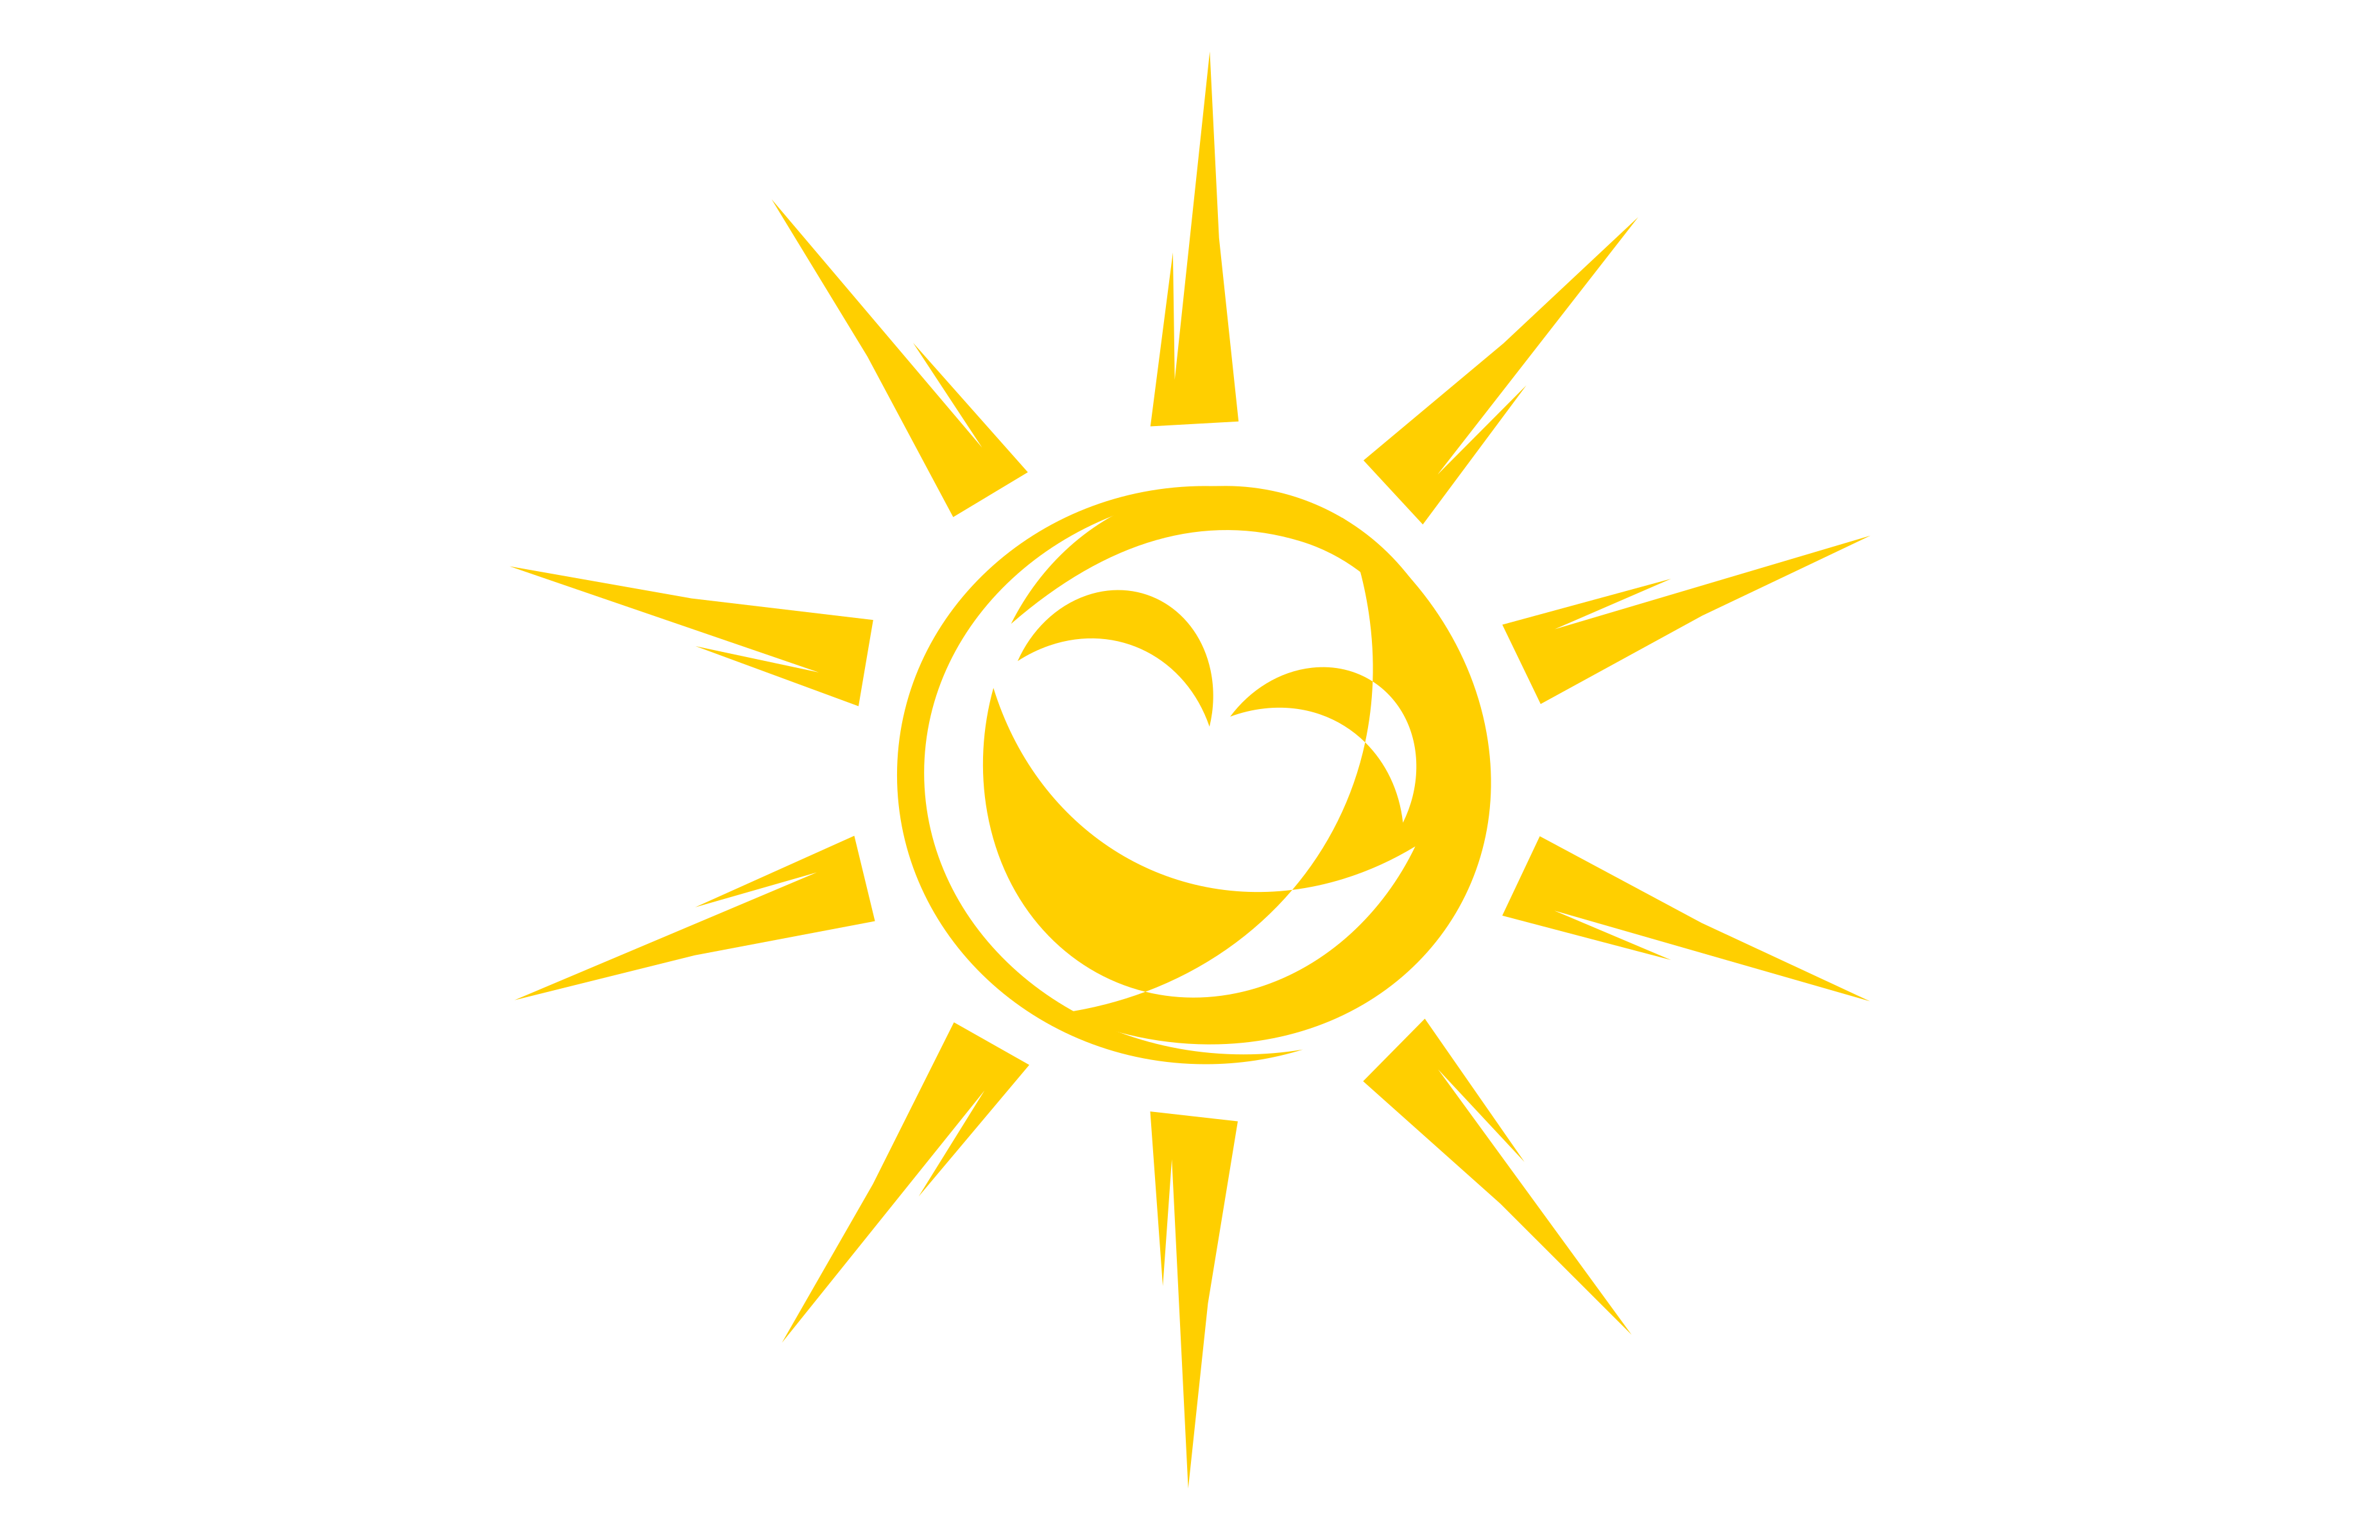 Smiley Sun by scyg